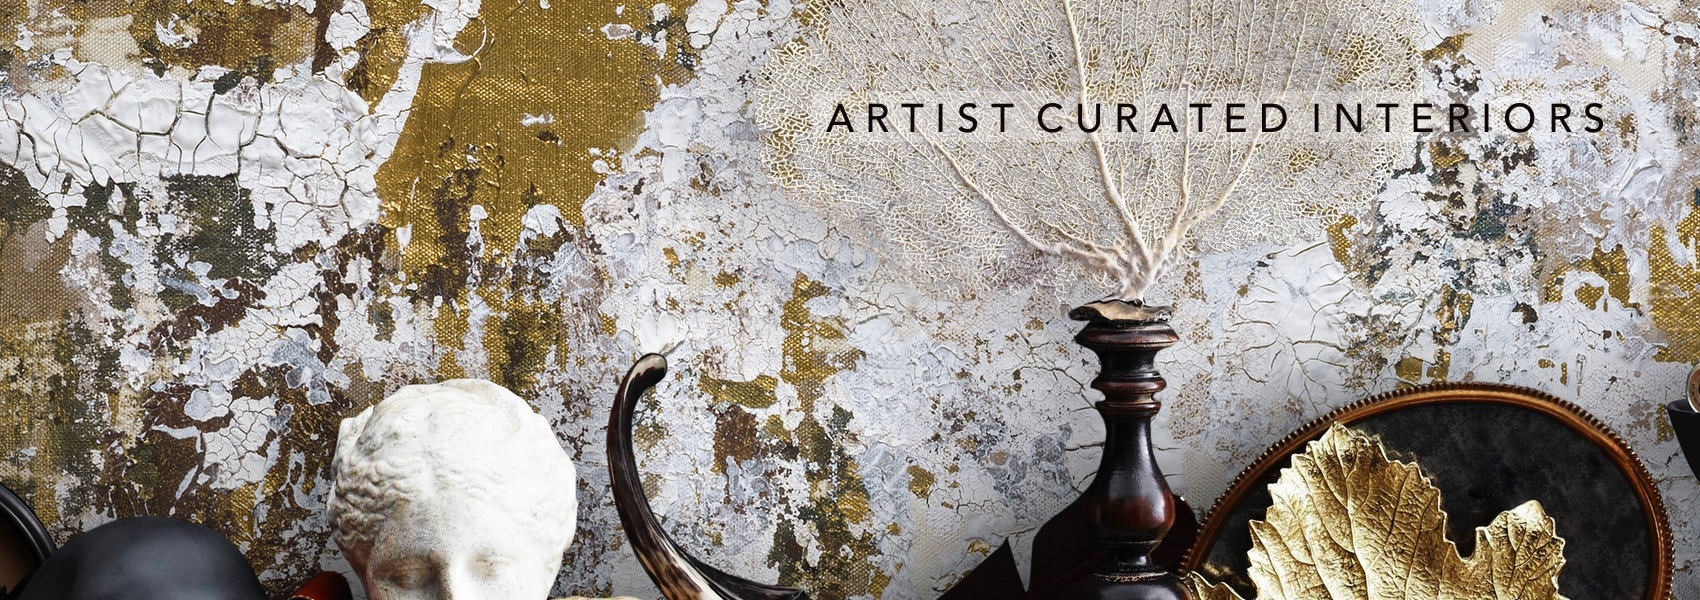 Curious Egg.  Artist Curated Interiors.